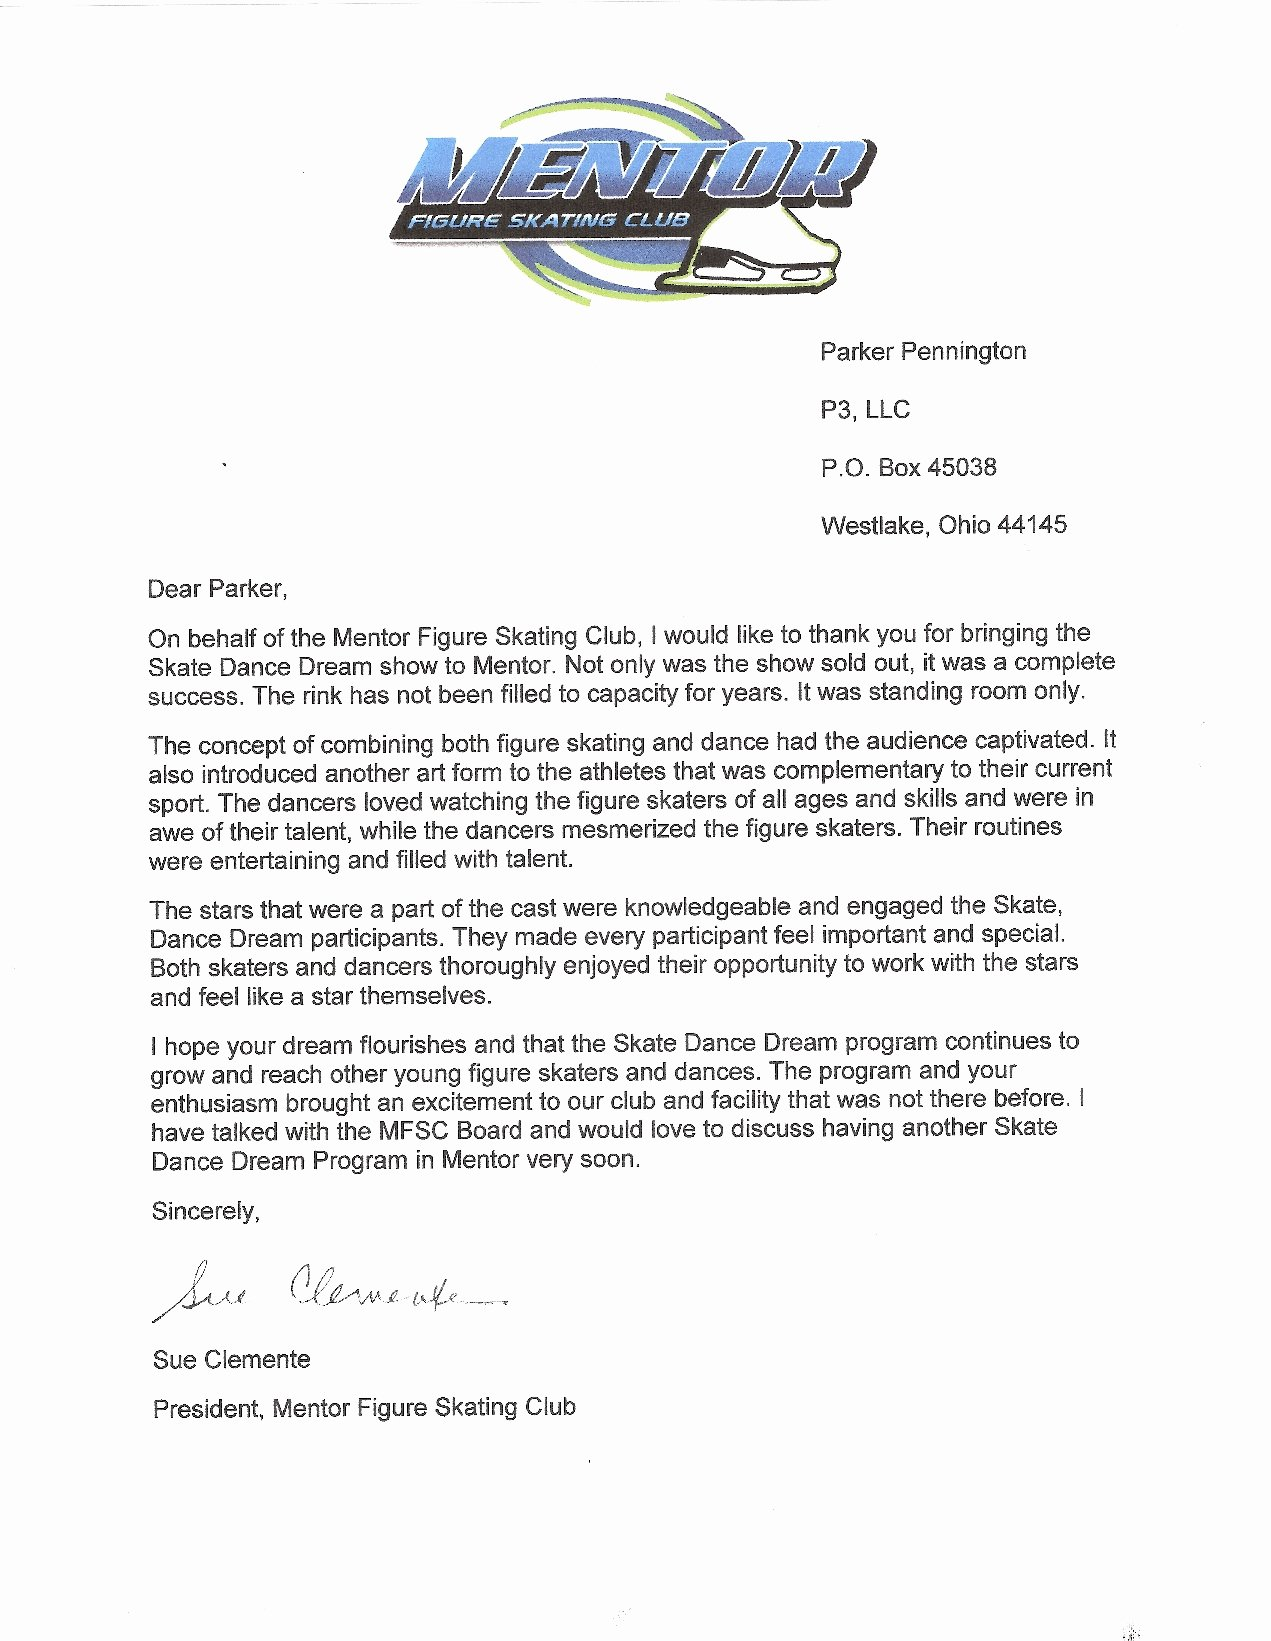 Thank You Note to Mentor Beautiful Letter Of Support From the Club President Of the Mentor